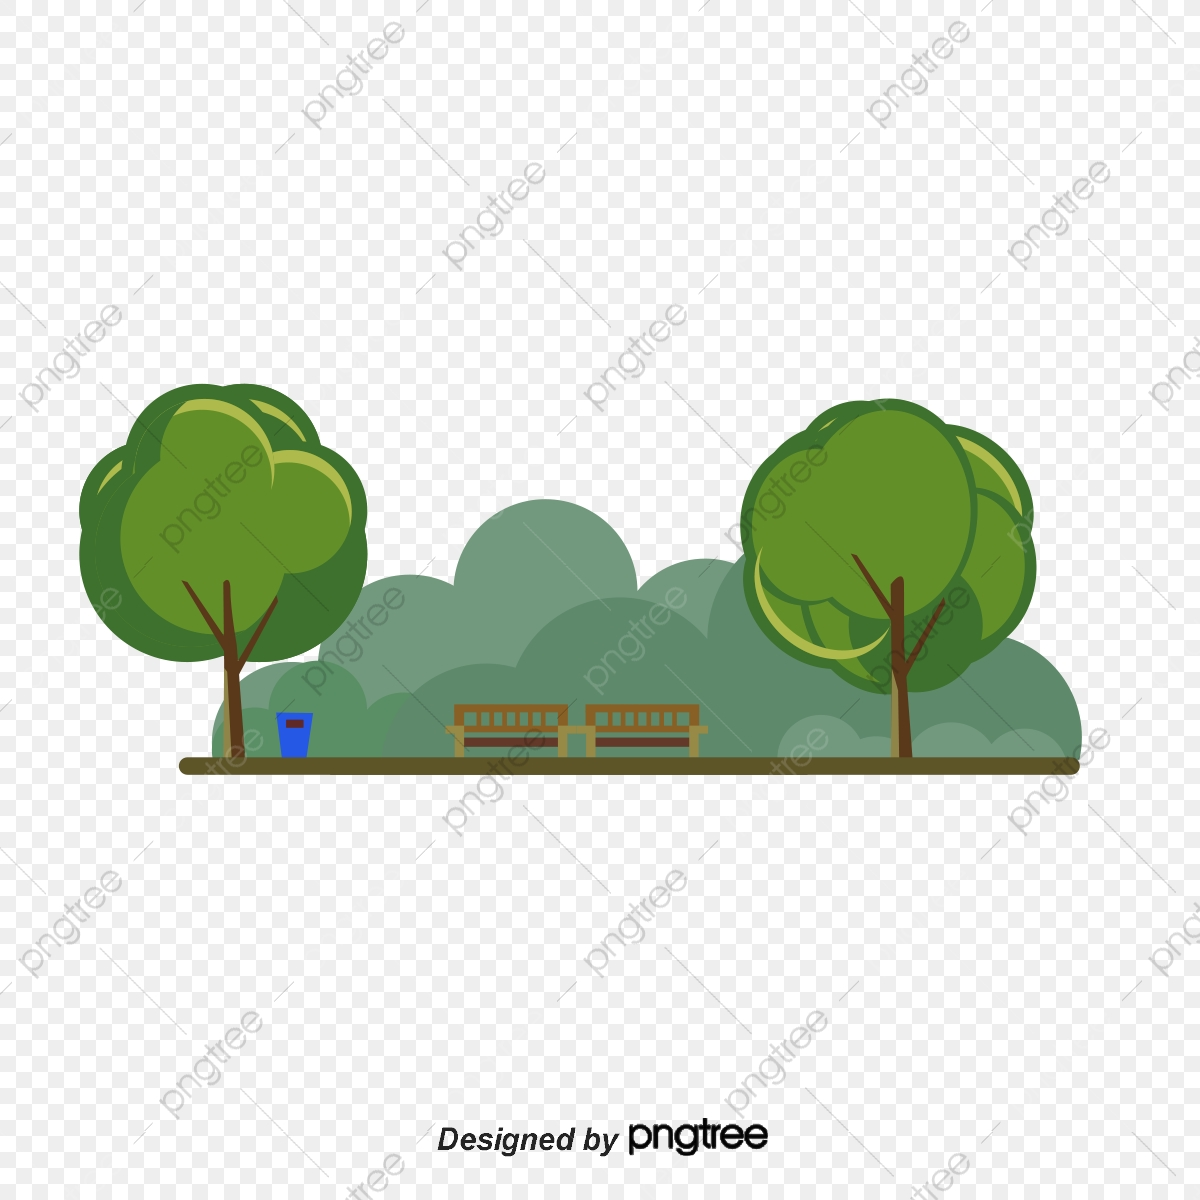 Park Chairs Cartoon Trees Hand Painted Cartoon Park Scene Chair Png And Vector With Transparent Background For Free Download Drawing cartoon trees is really really easy! https pngtree com freepng park chairs cartoon trees 2685062 html